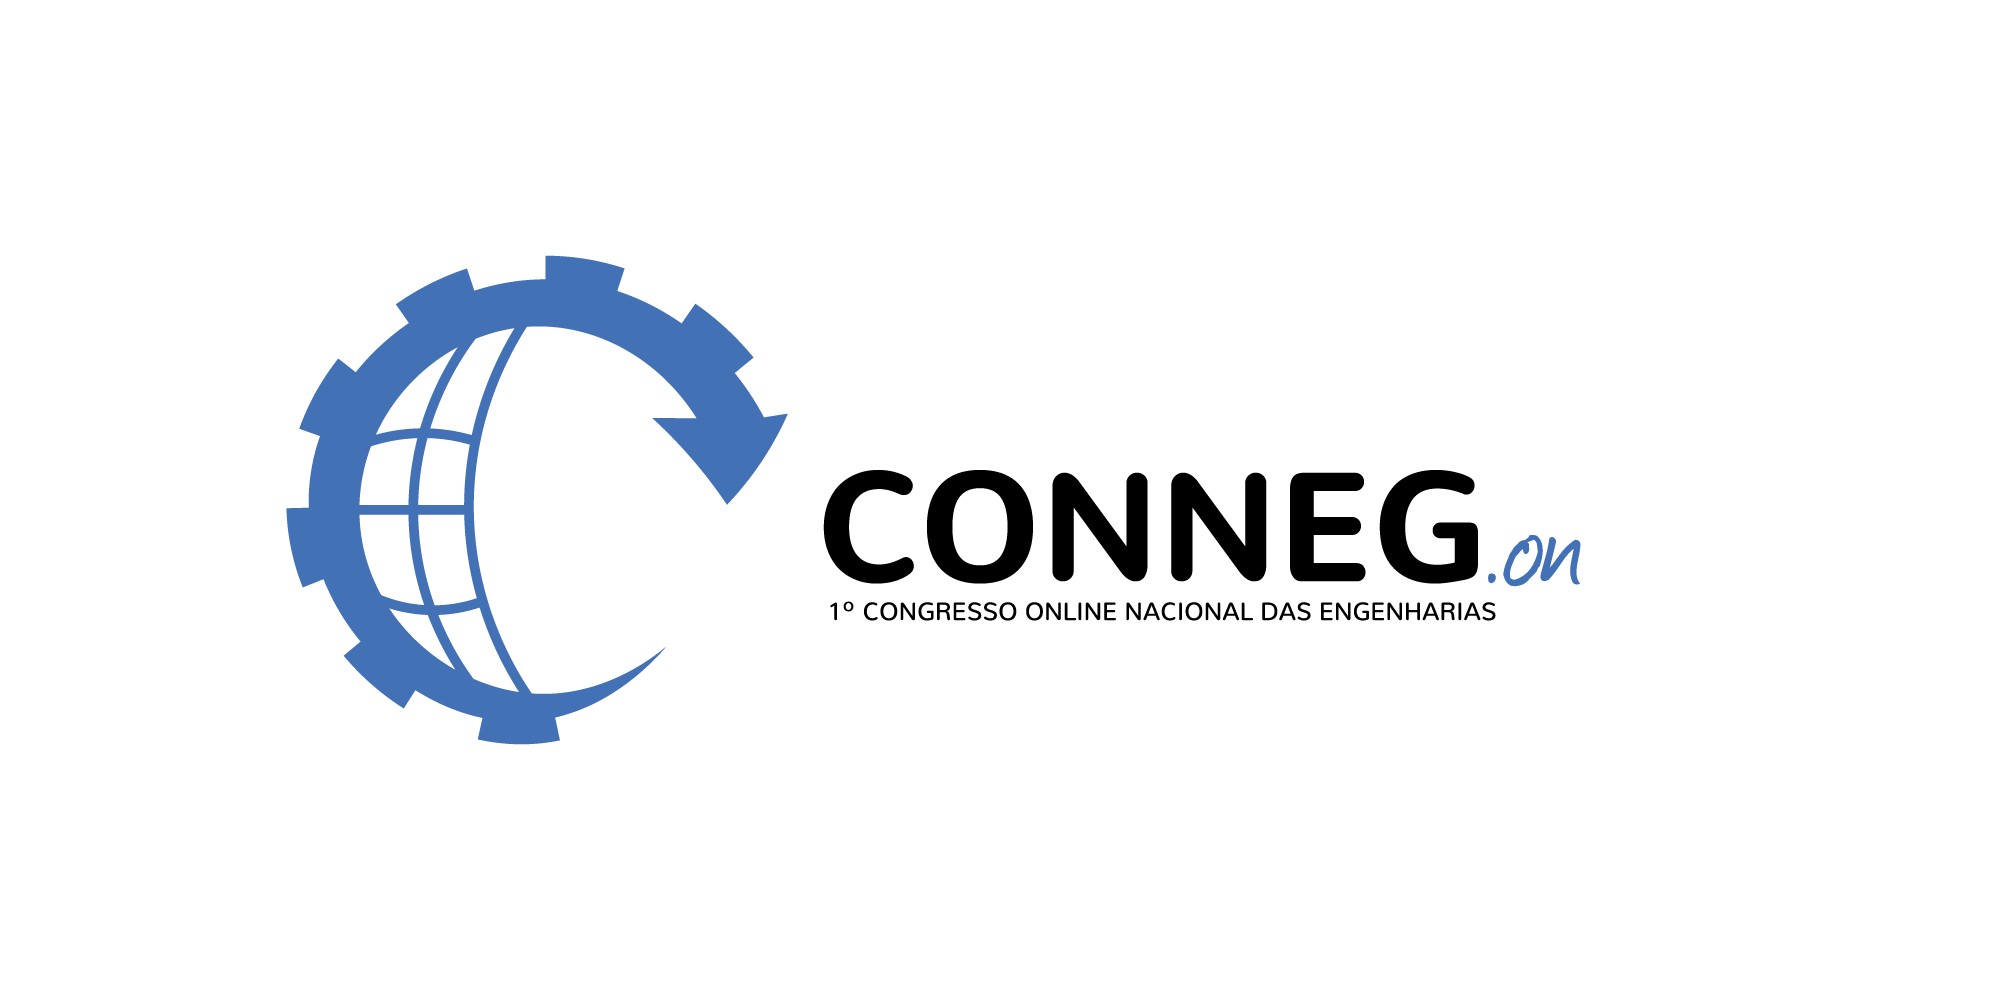 CONNEG.on